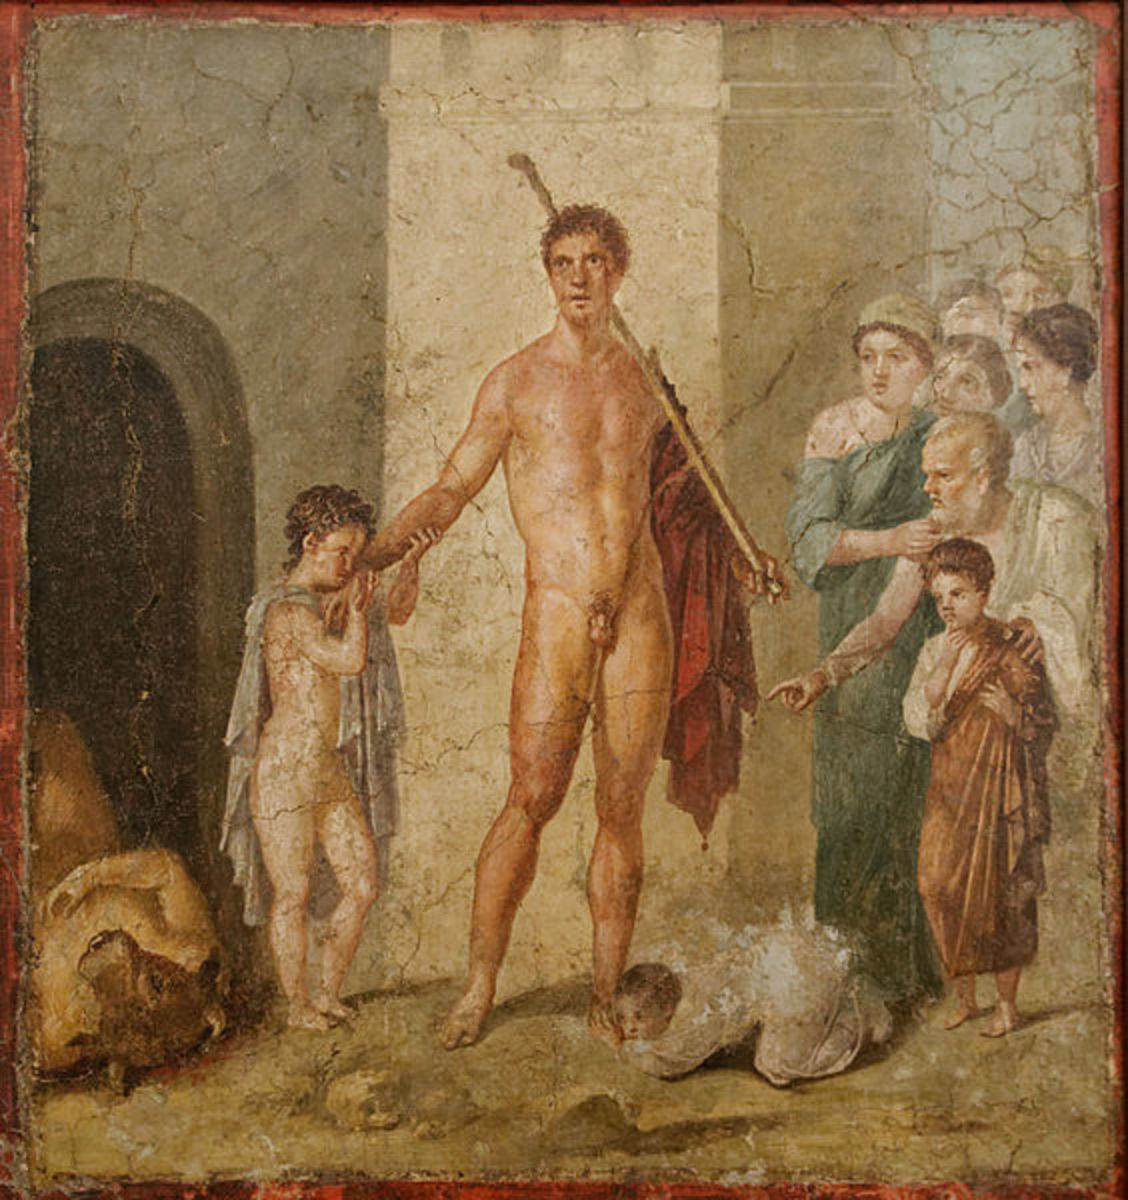 Pompeian fresco of Theseus standing over the body of the Minotaur.